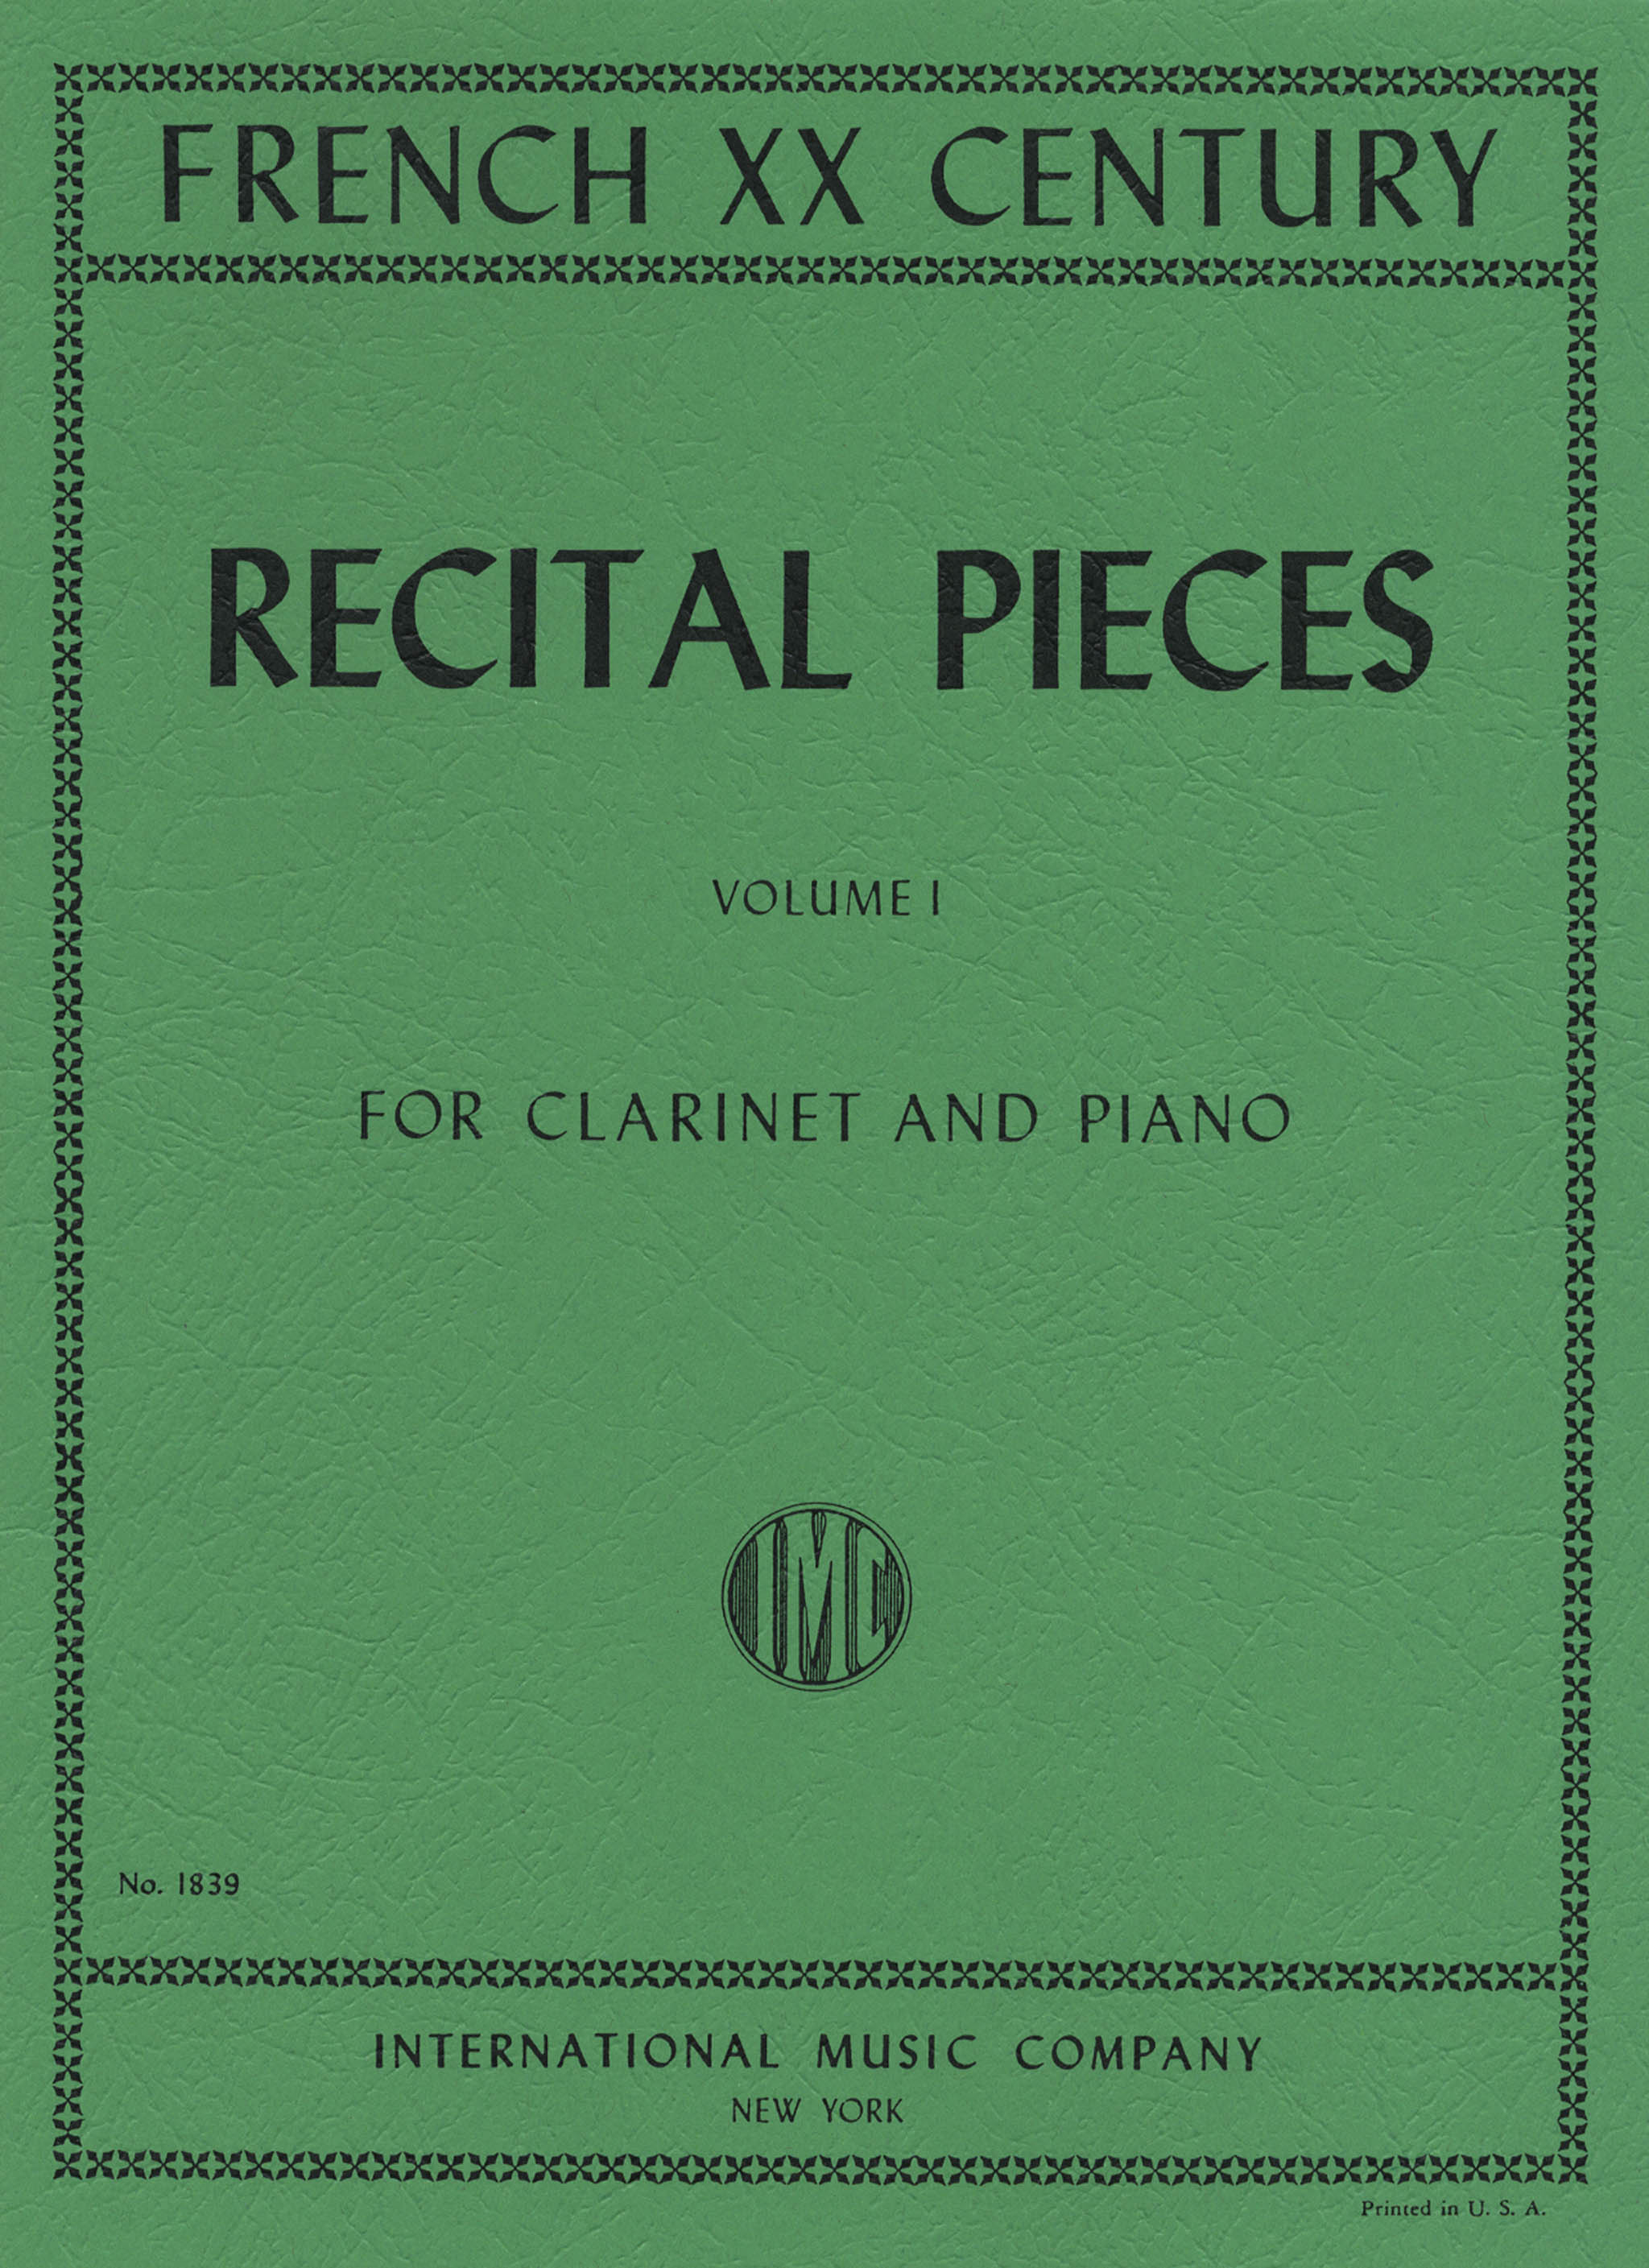 French 20th Century Recital Pieces, Volume 1 Cover